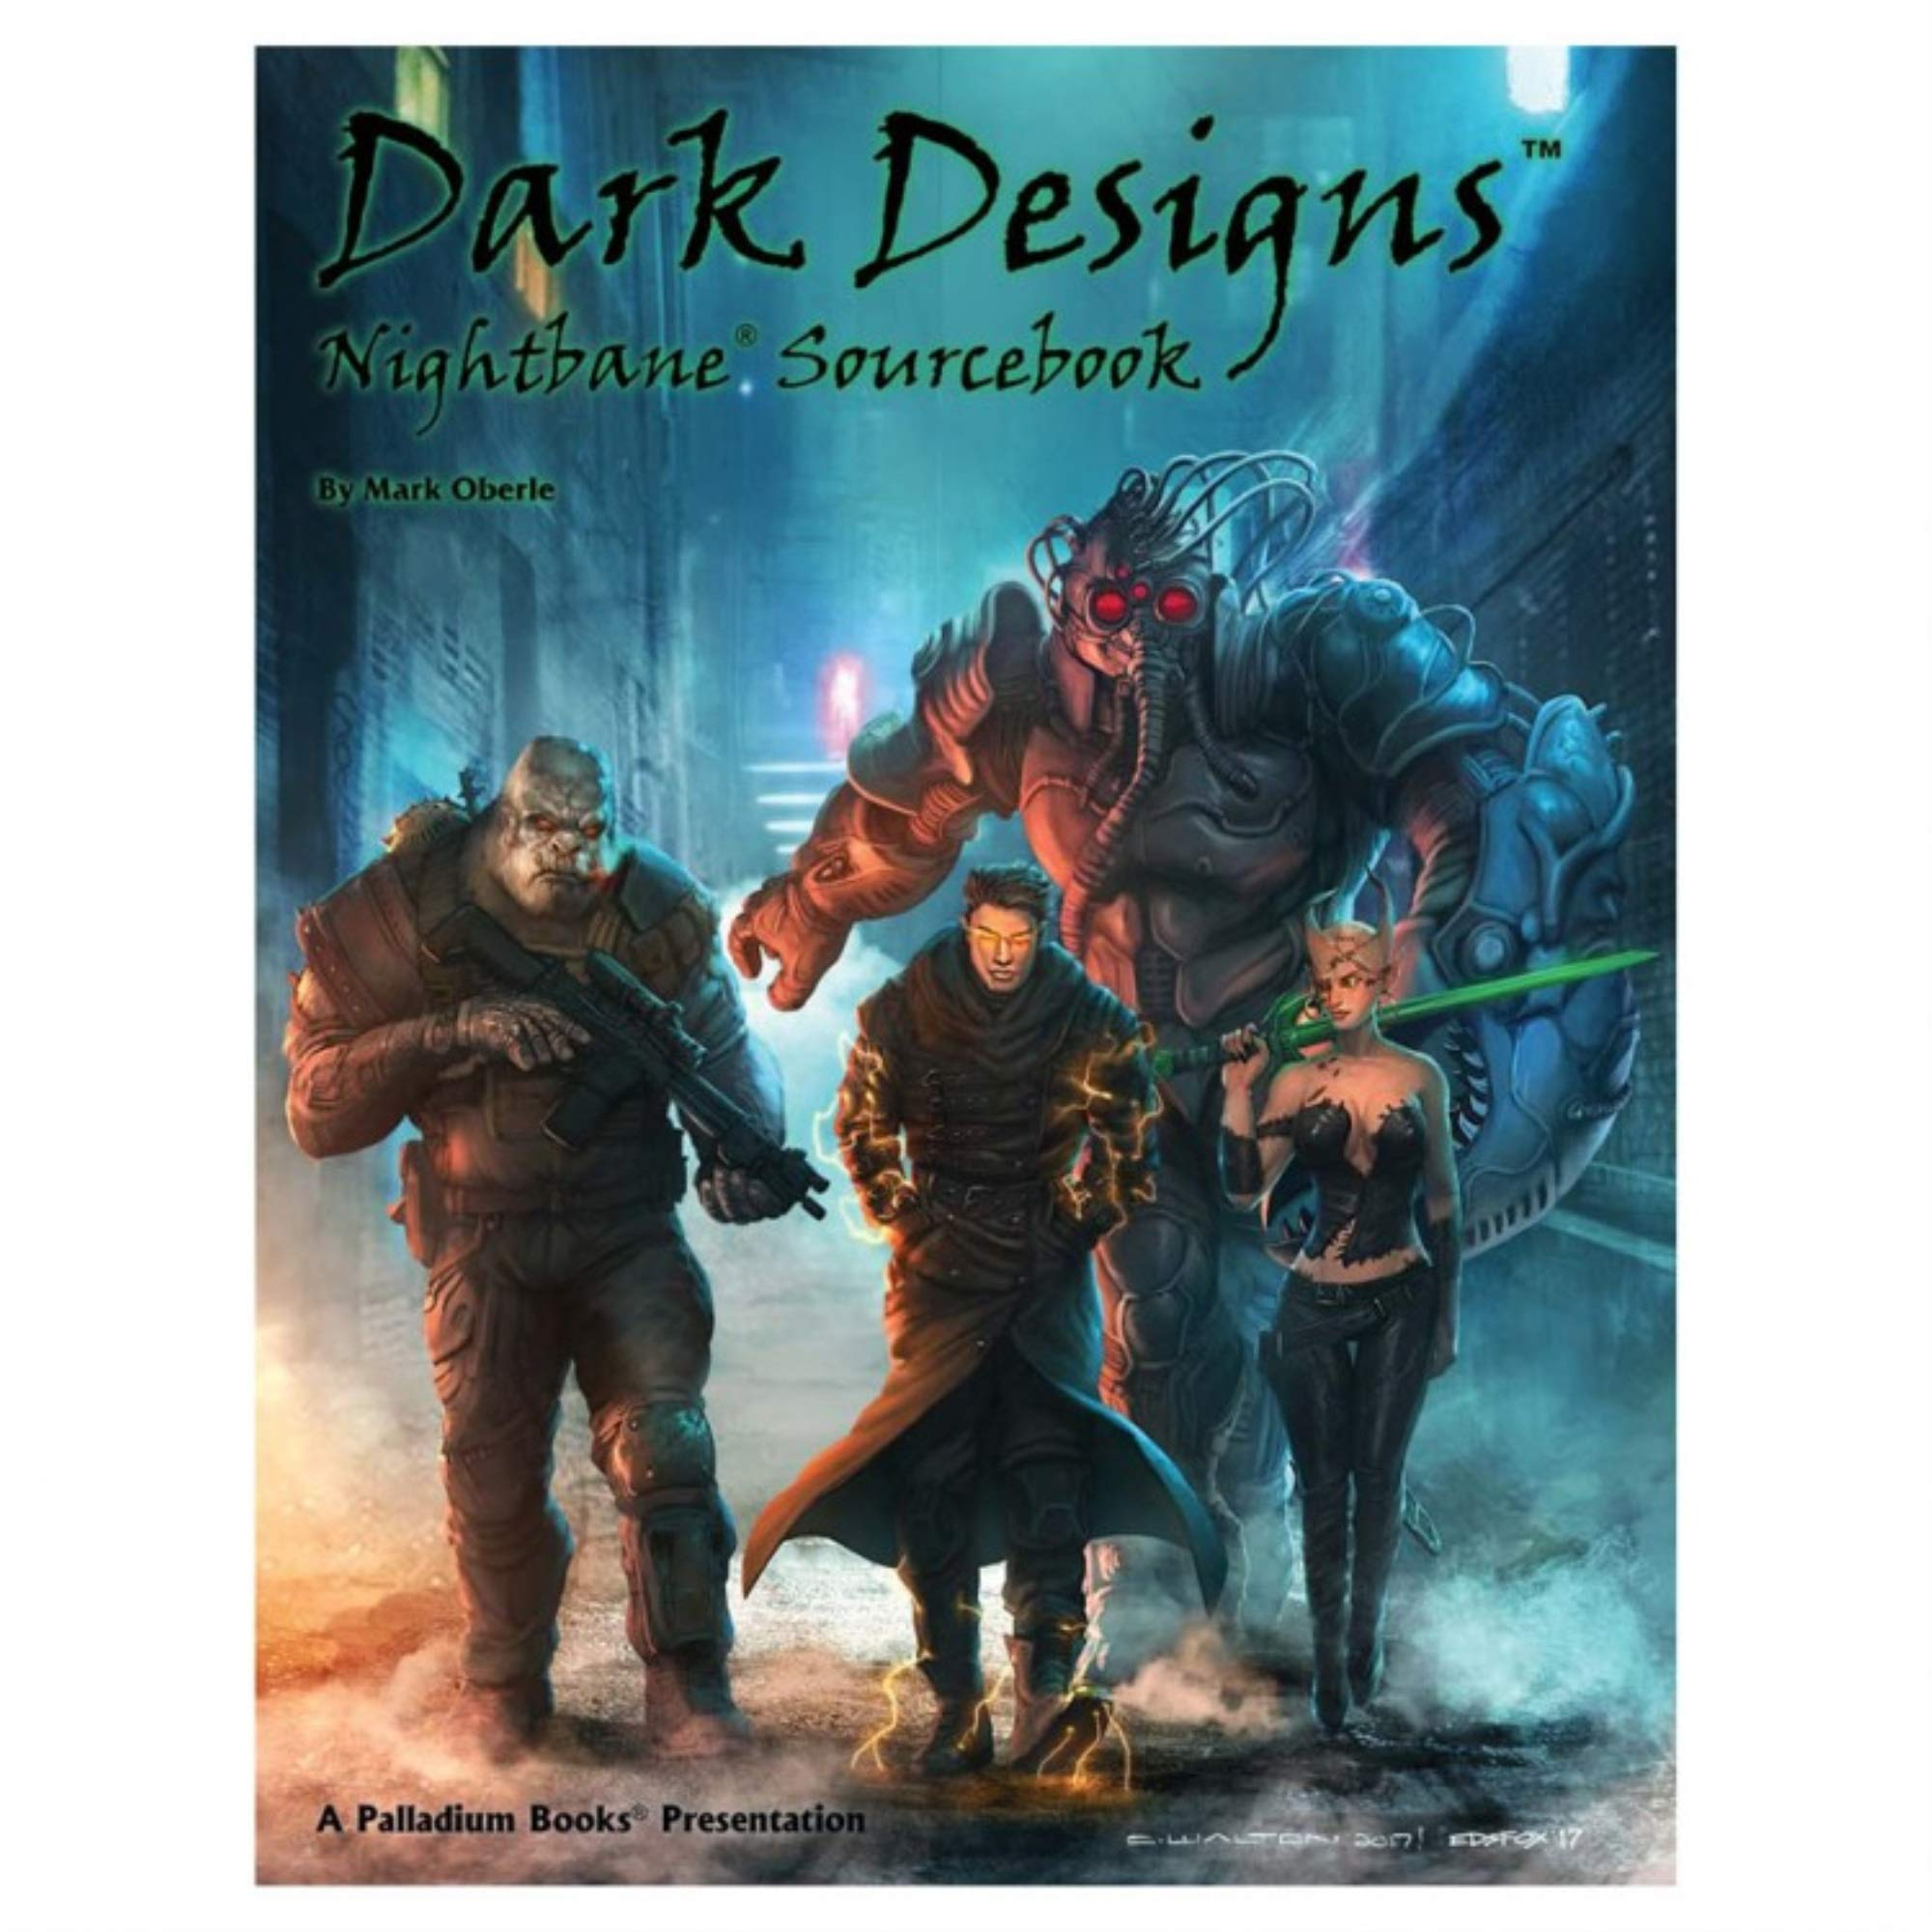 Dark Designs Nightbane Source Book